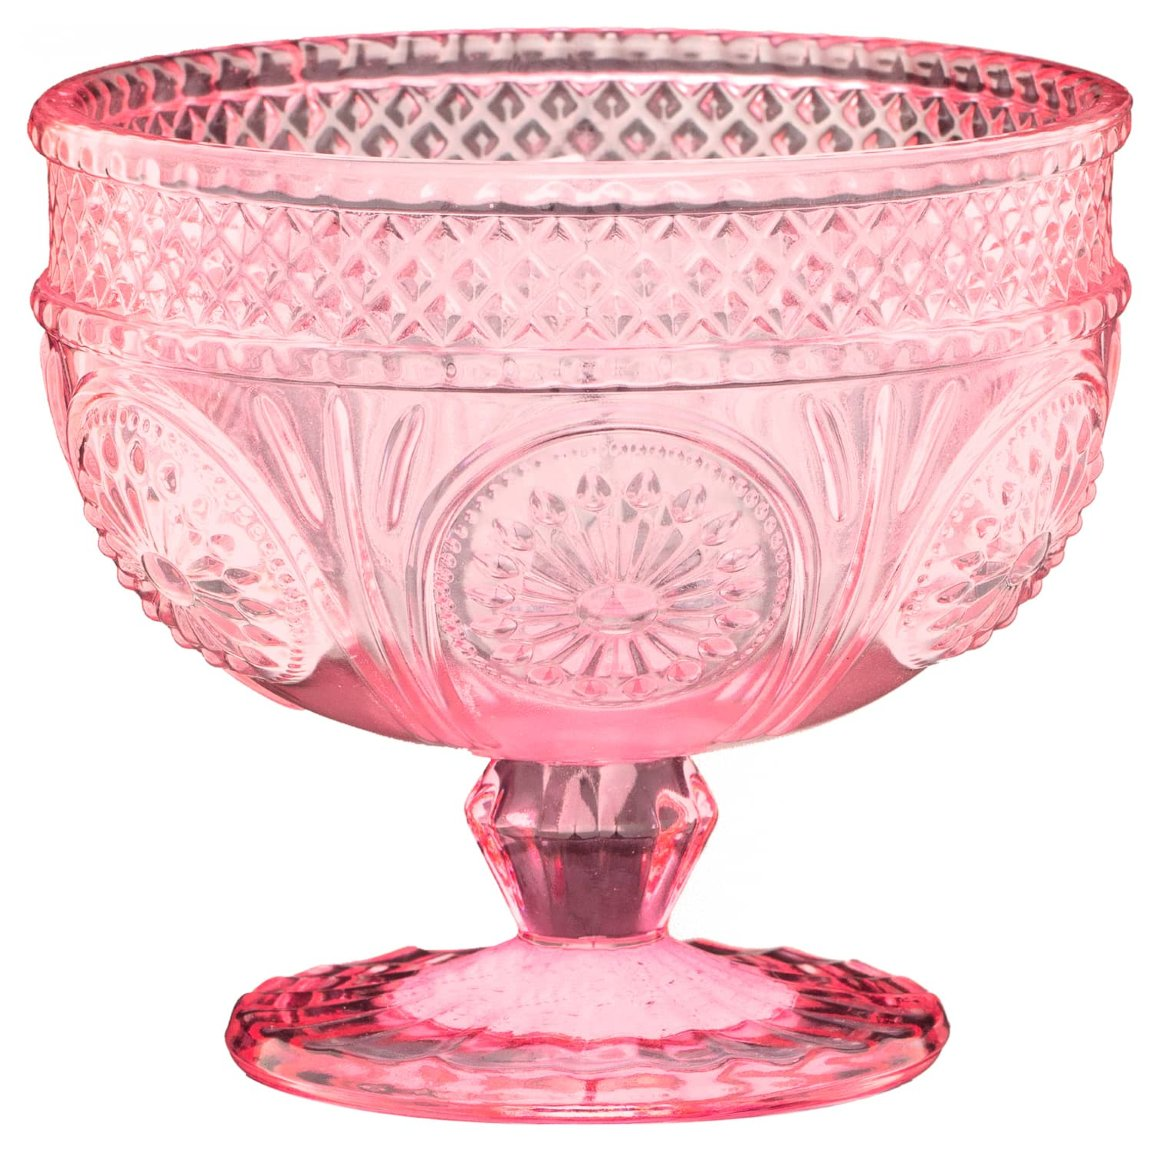 Glass Dessert Bowl - Pink